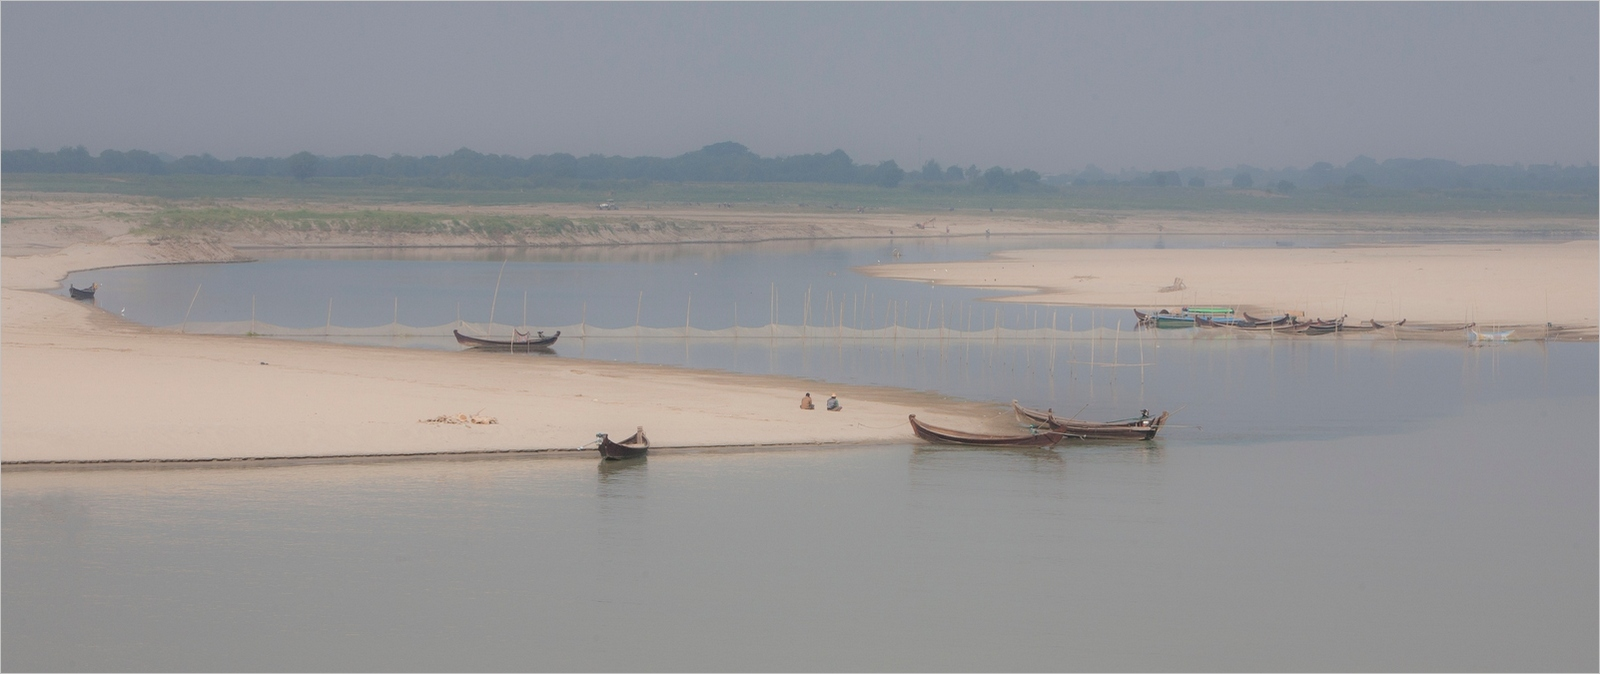 Tranquil Scene on the Irawaddy River, Myanmar